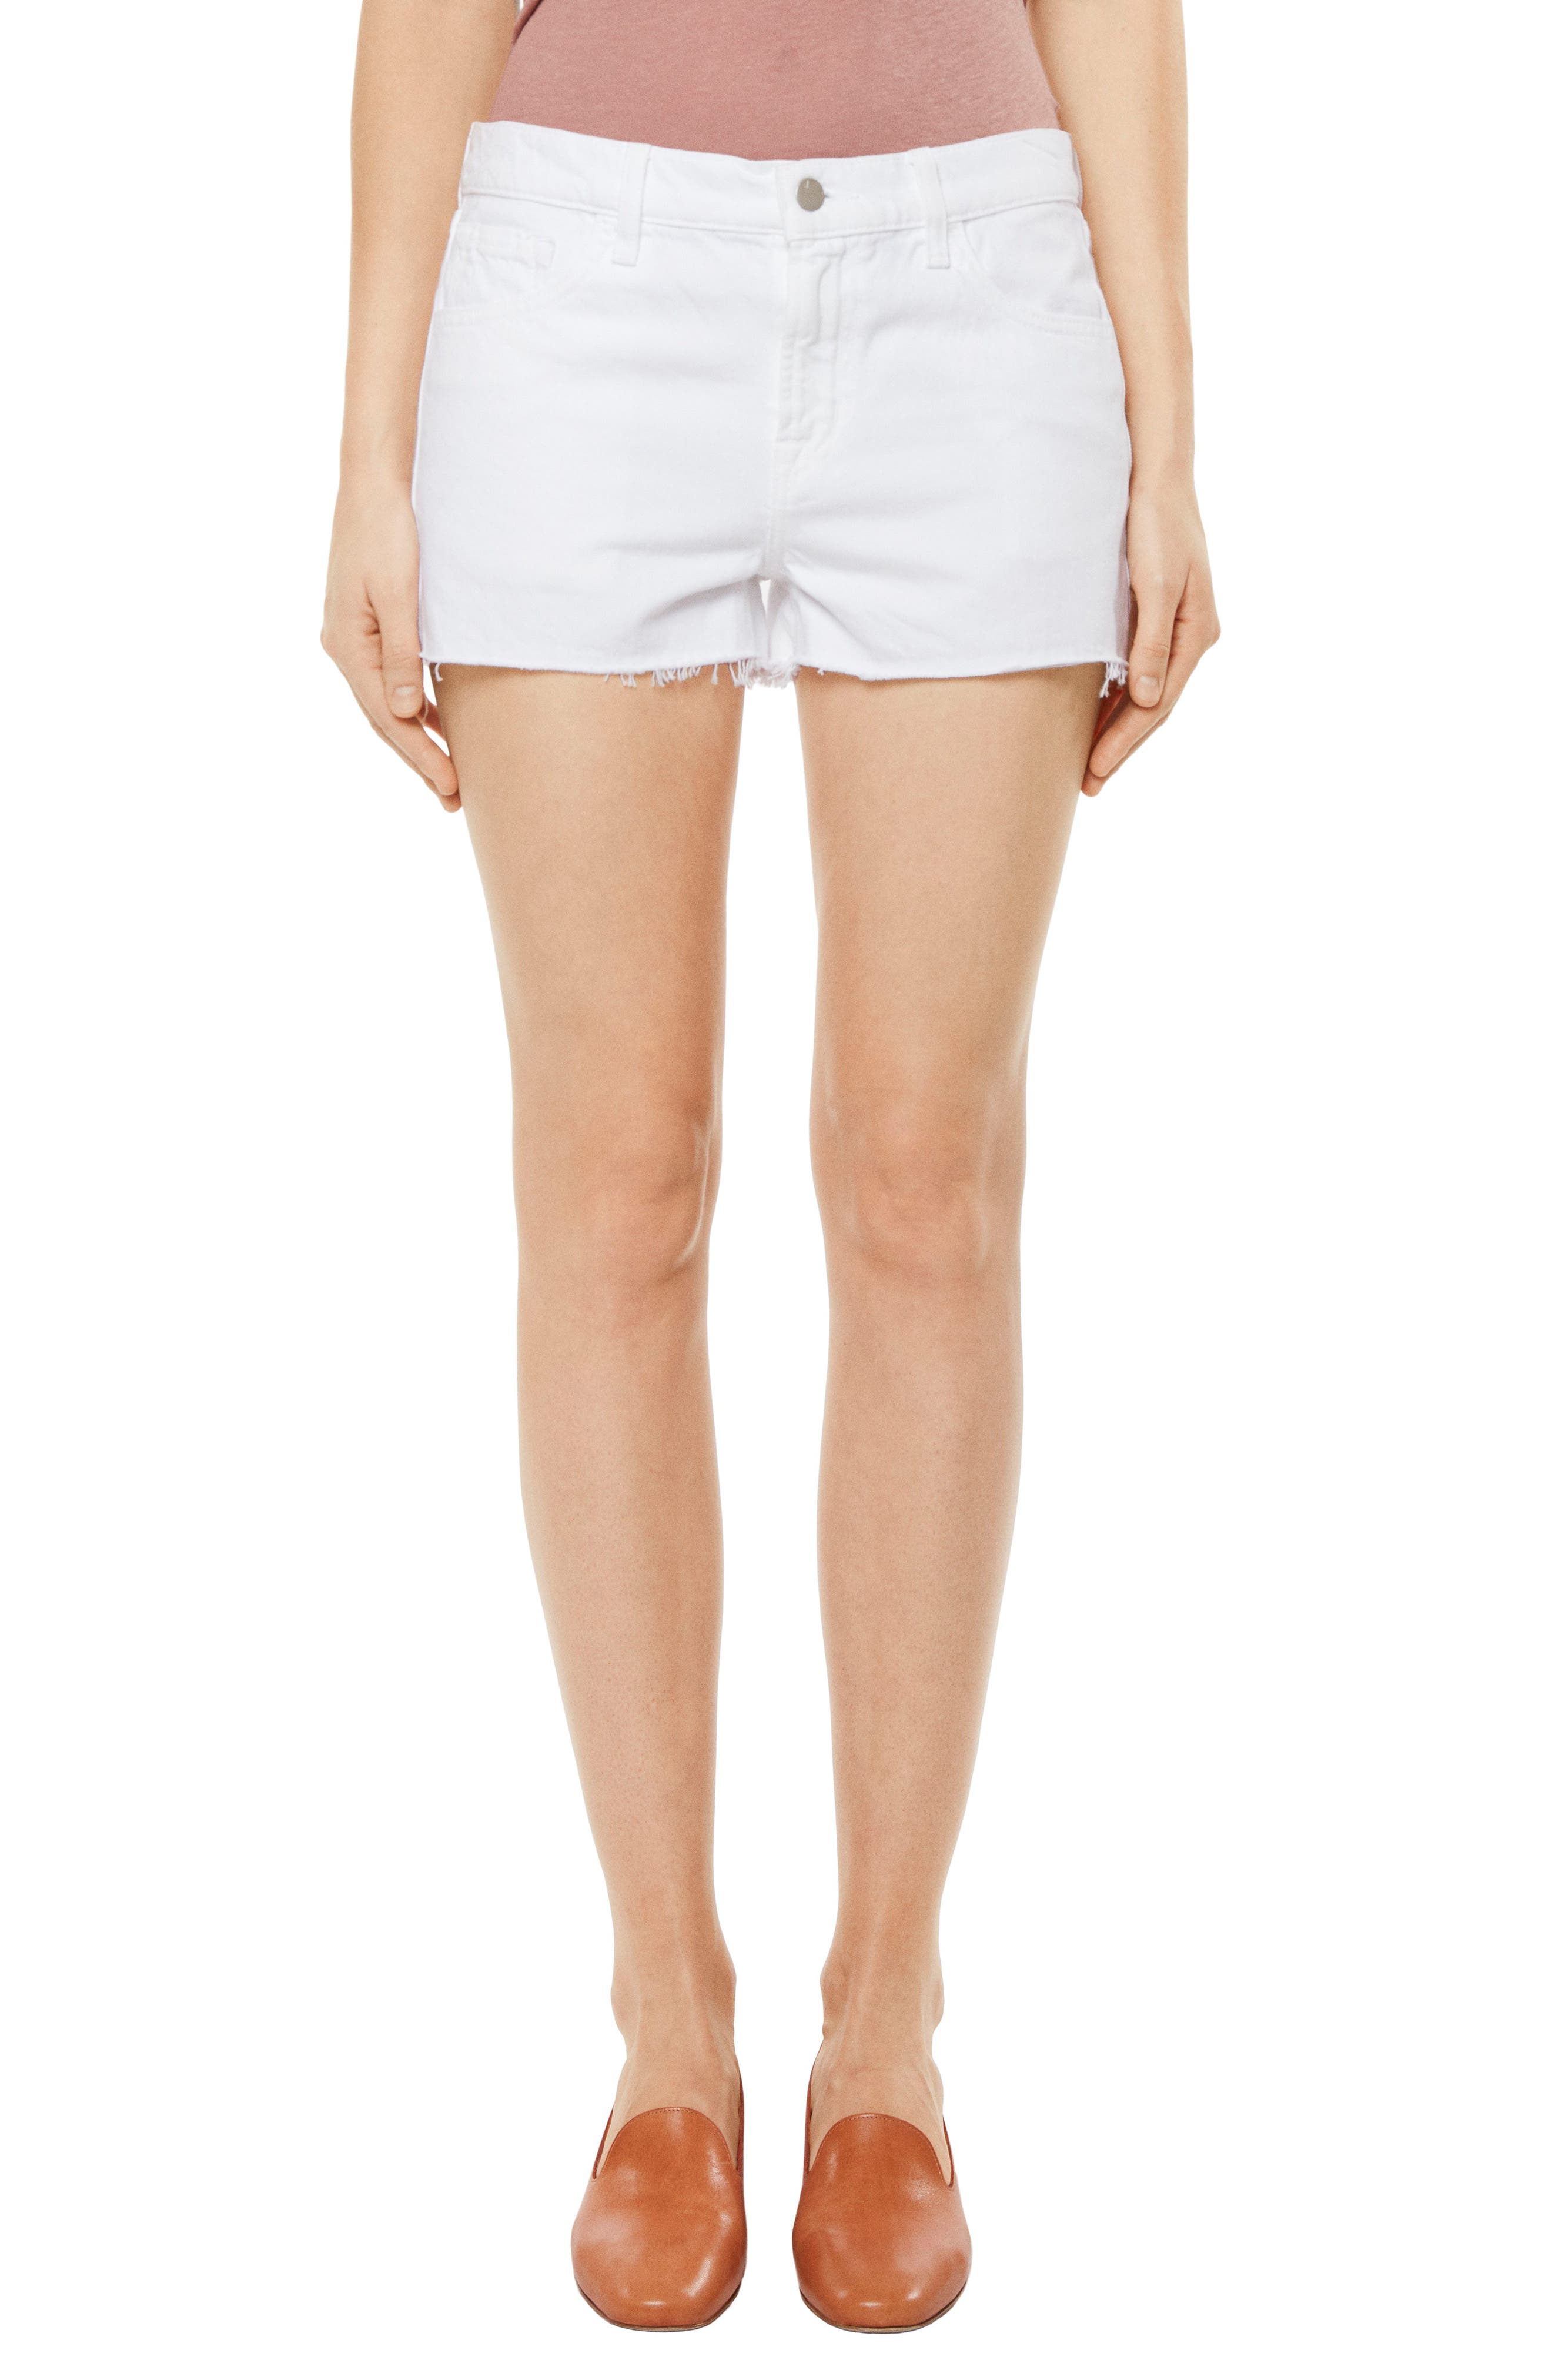 J BRAND,                             Raw Hem Denim Shorts,                             Main thumbnail 1, color,                             109